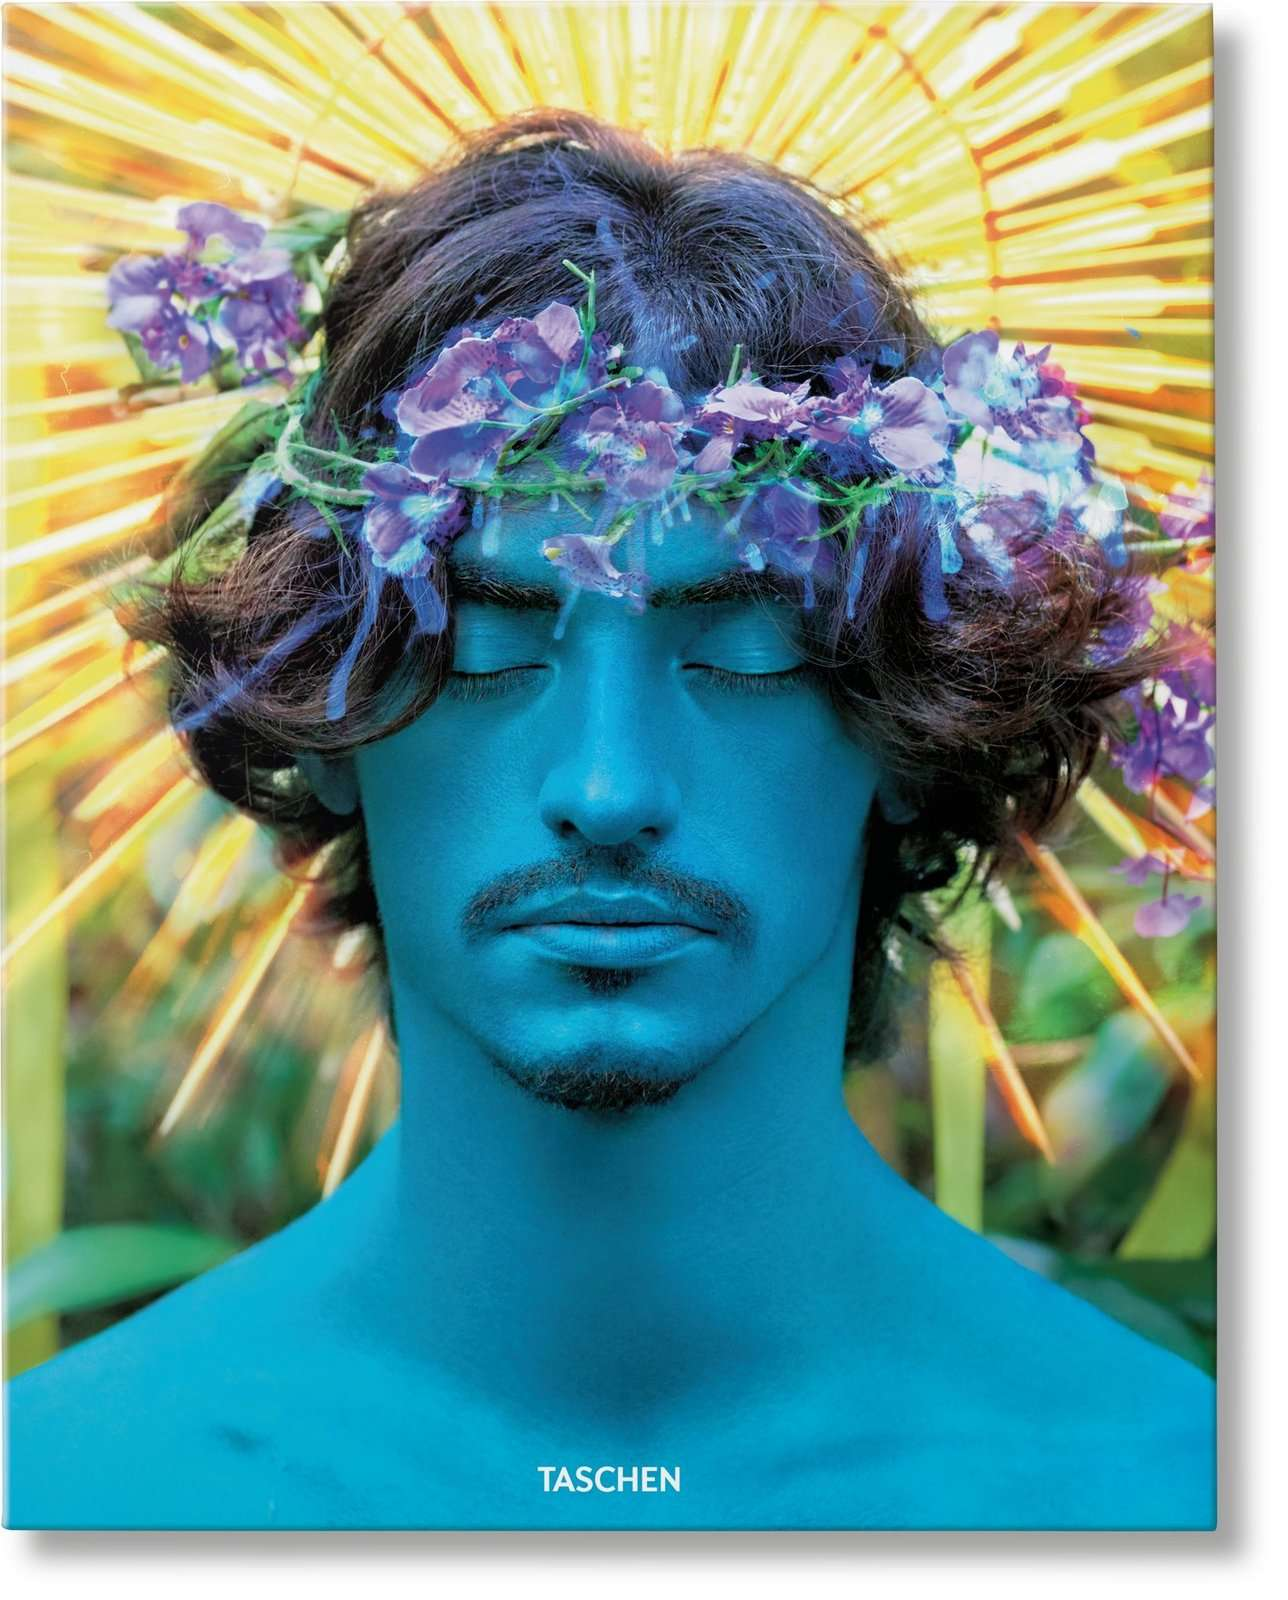 david lachapelle artiste photographe